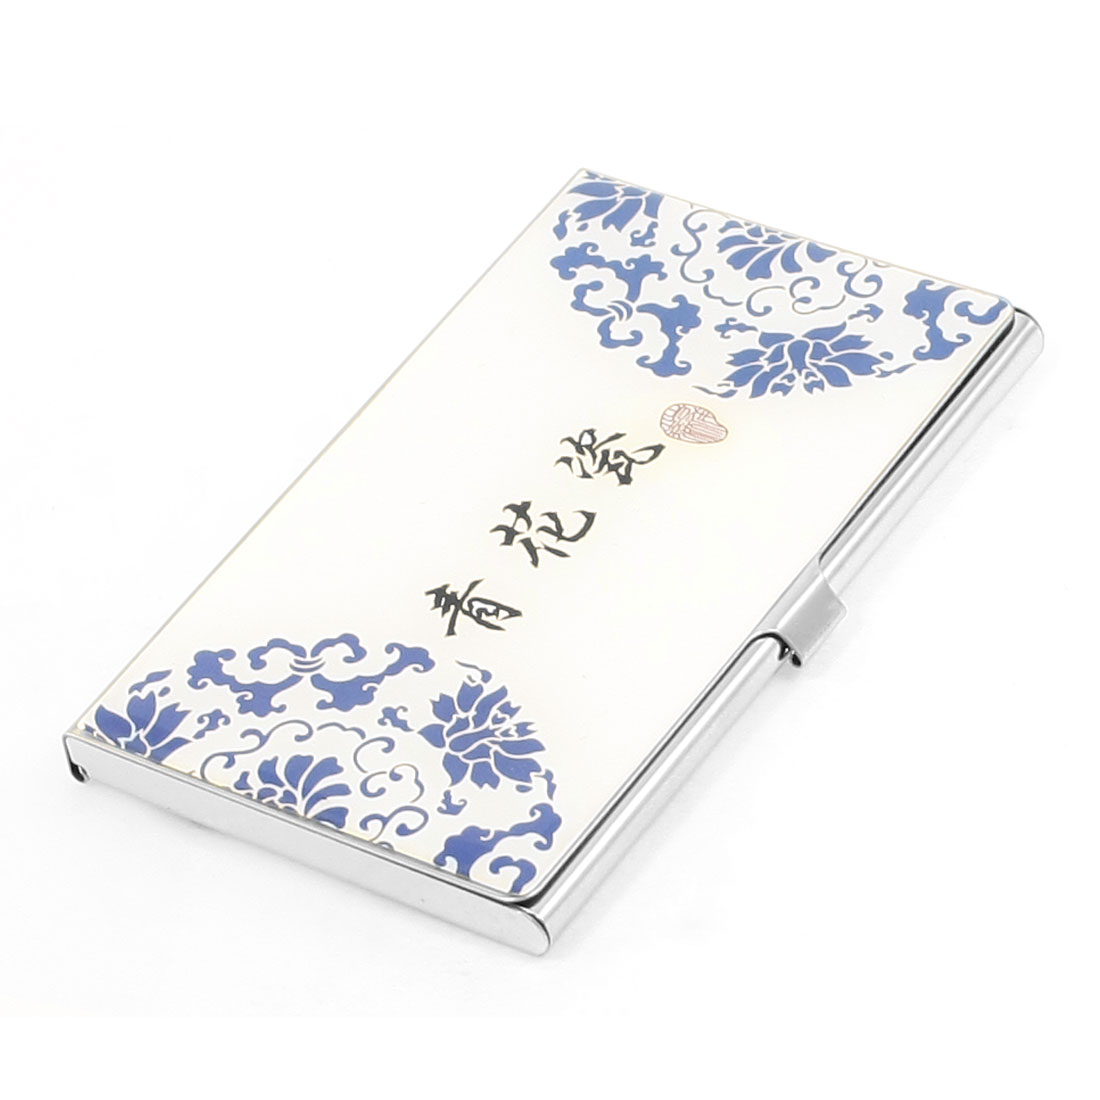 Chinese Blue and White Porcelain Pattern Mirrored Metal Business Name Card Holder